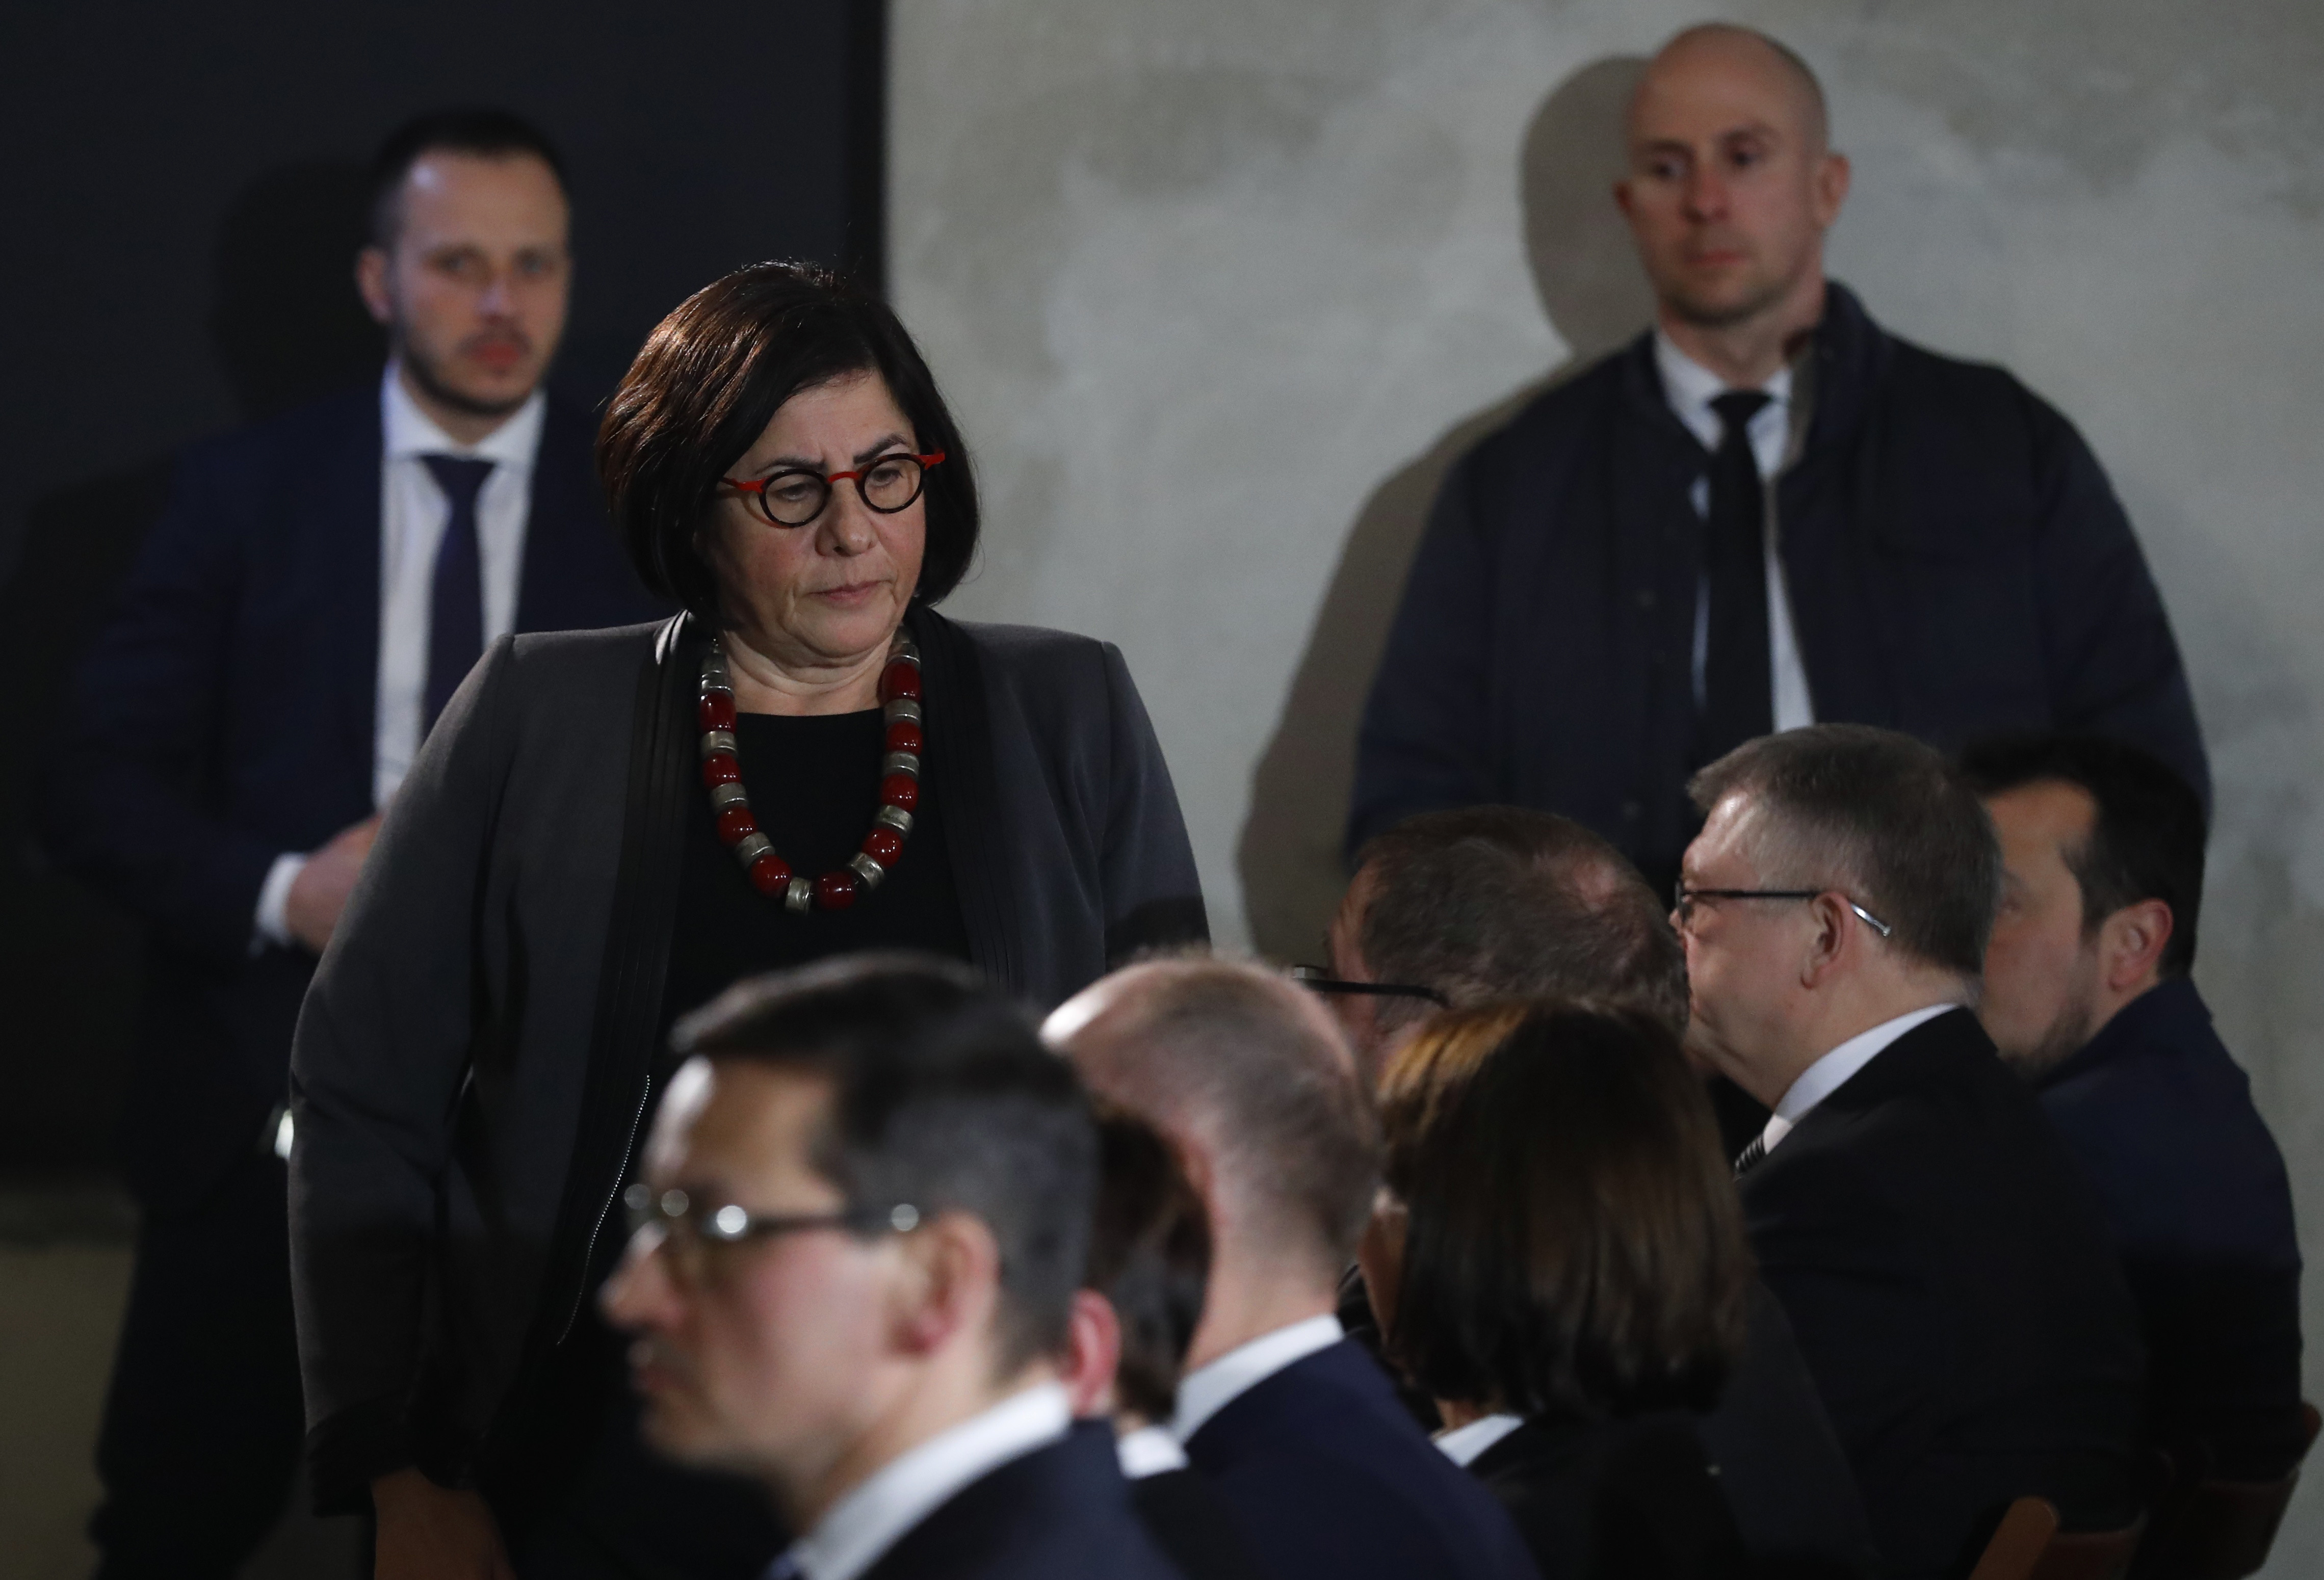 Ambassador of Israel to Poland Anna Azari attends a commemoration event at the former Nazi German concentration and extermination camp Auschwitz II-Birkenau, January 27, 2018 (REUTERS/KACPER PEMPEL)